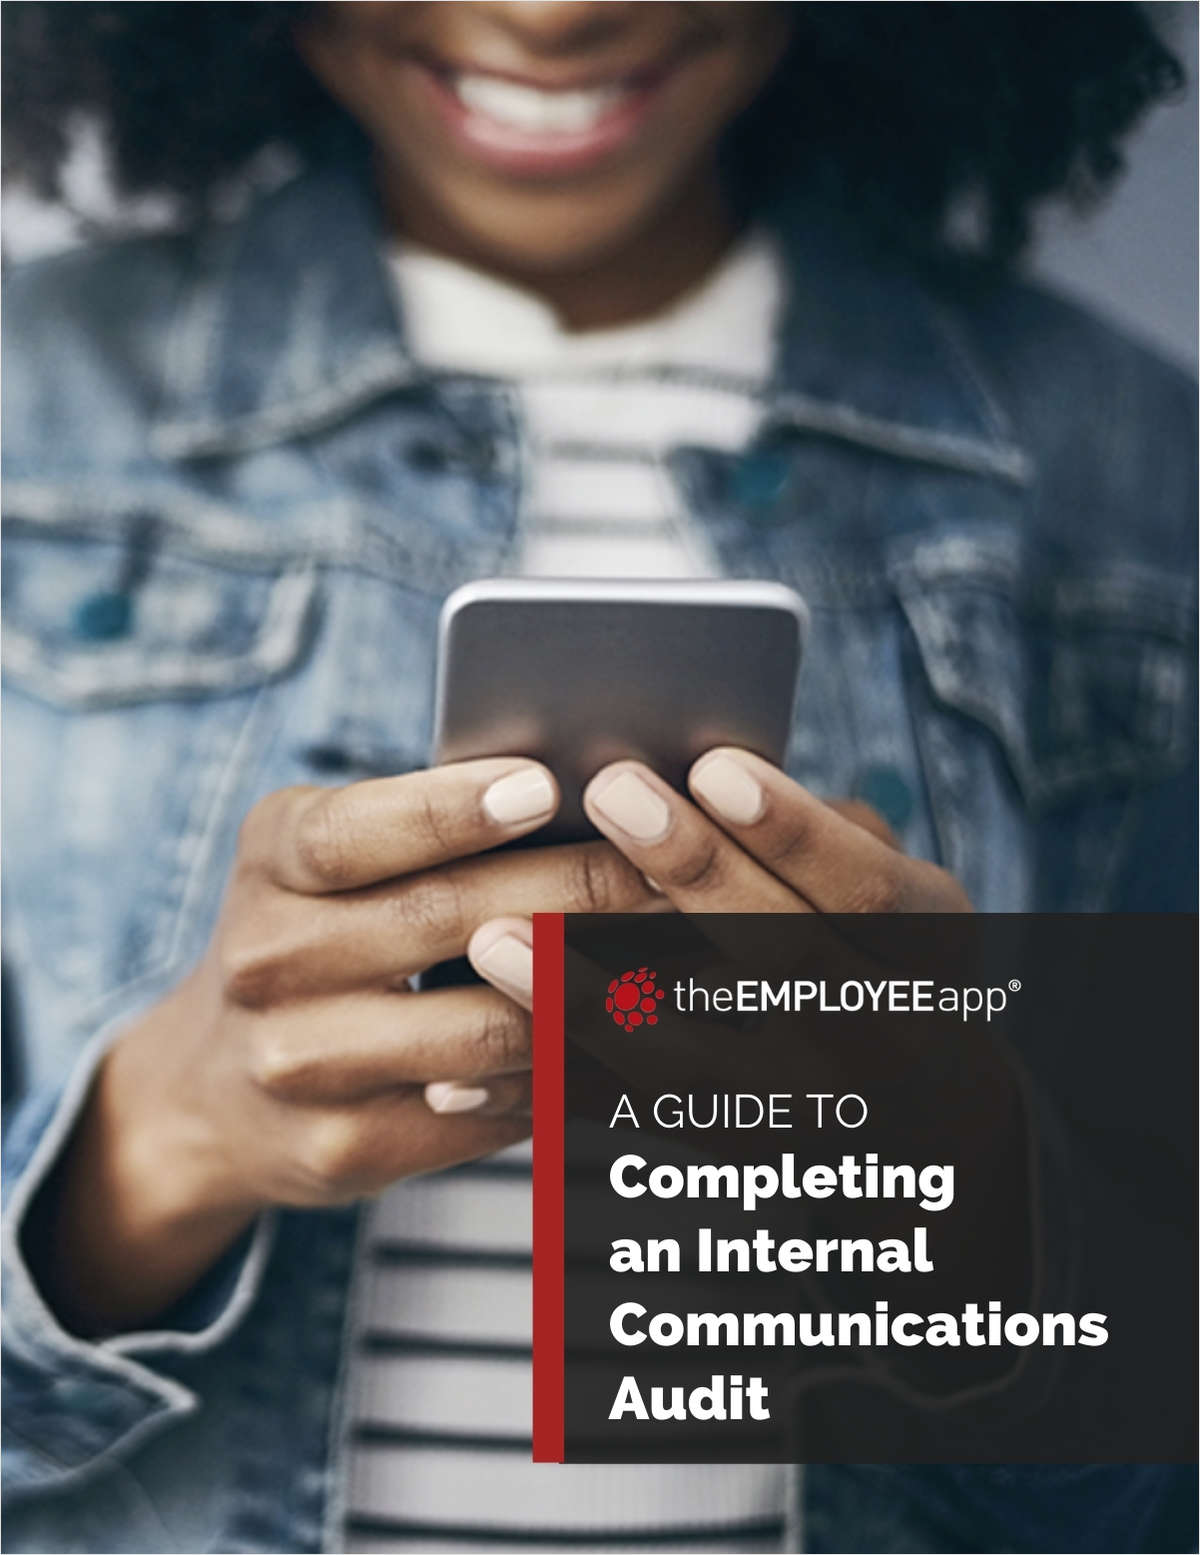 A Guide to Completing an Internal Communications Audit